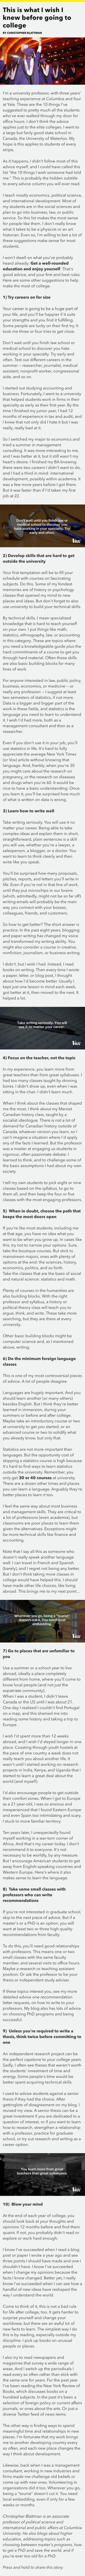 10 advices to help in college